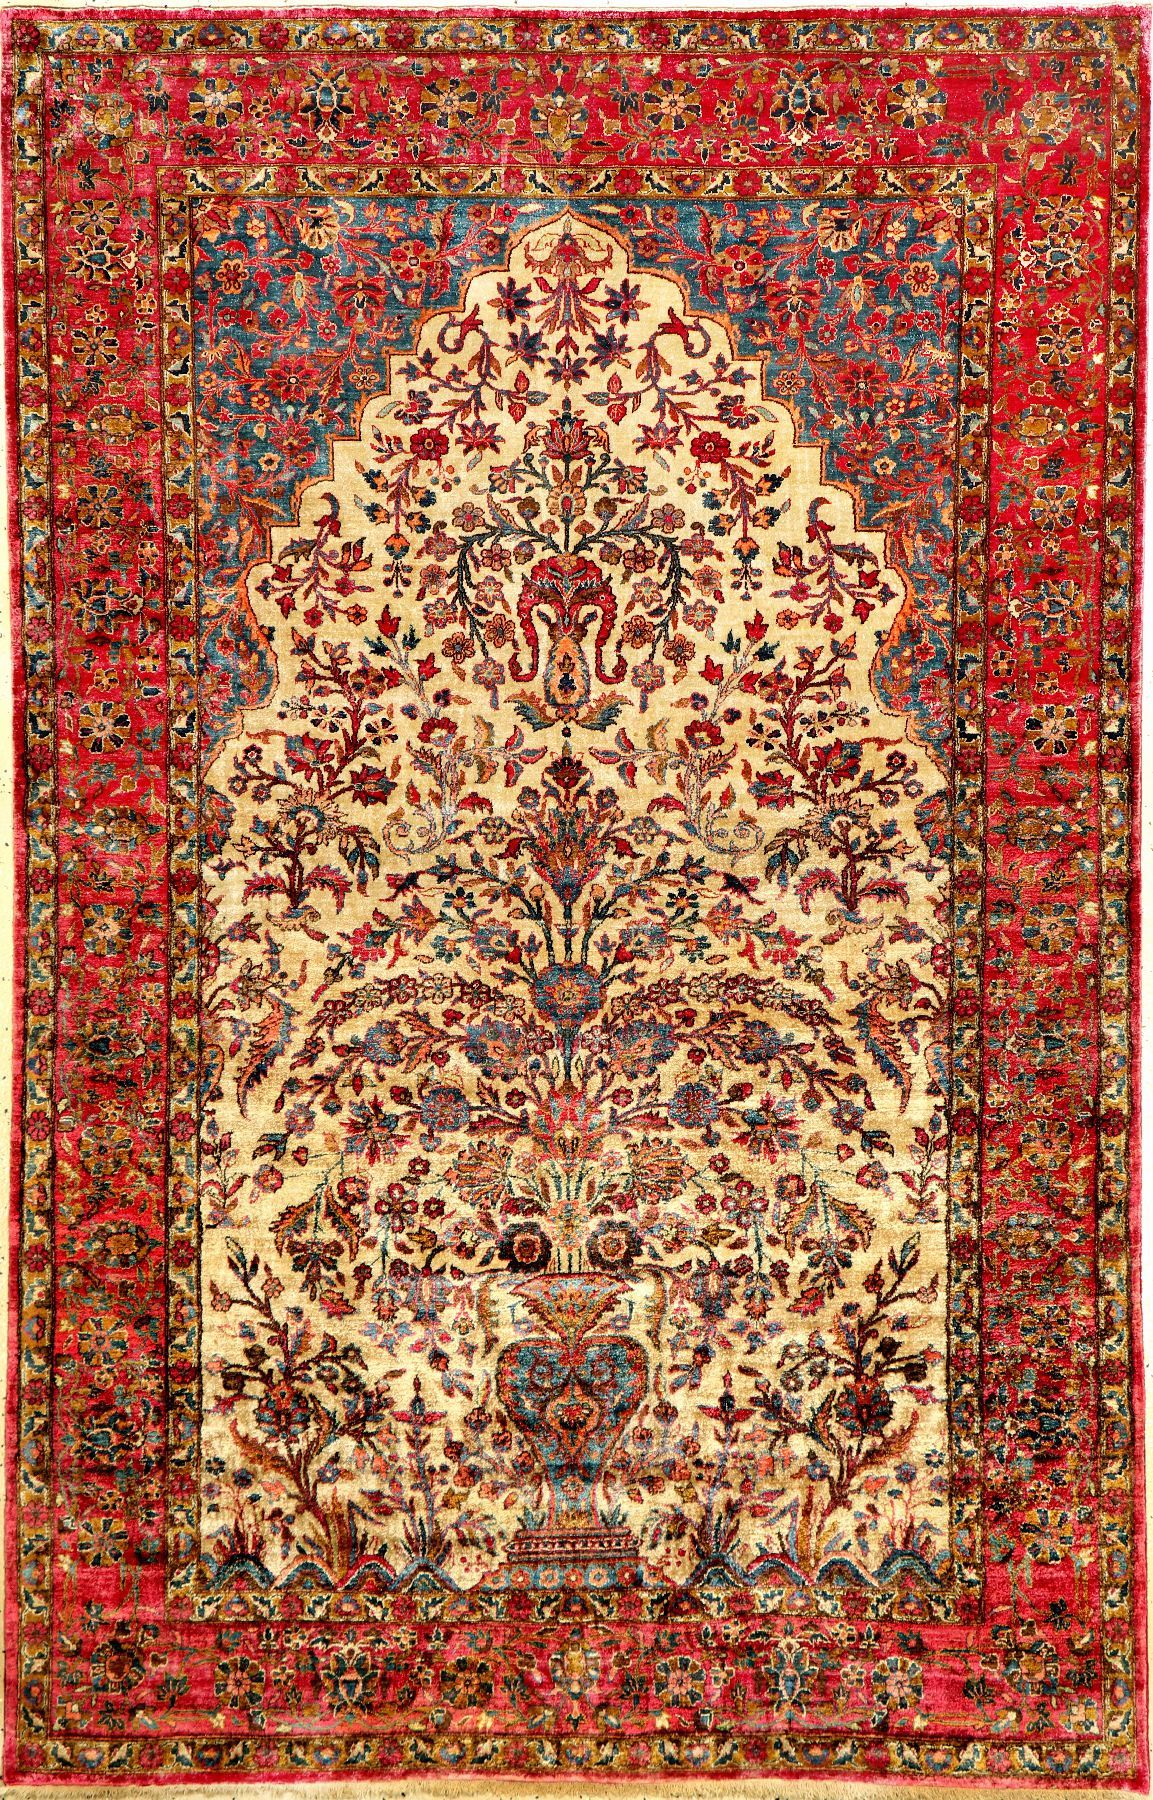 Kashan Rug Central Persia Late 19th Century Pure Natural Silk Rox